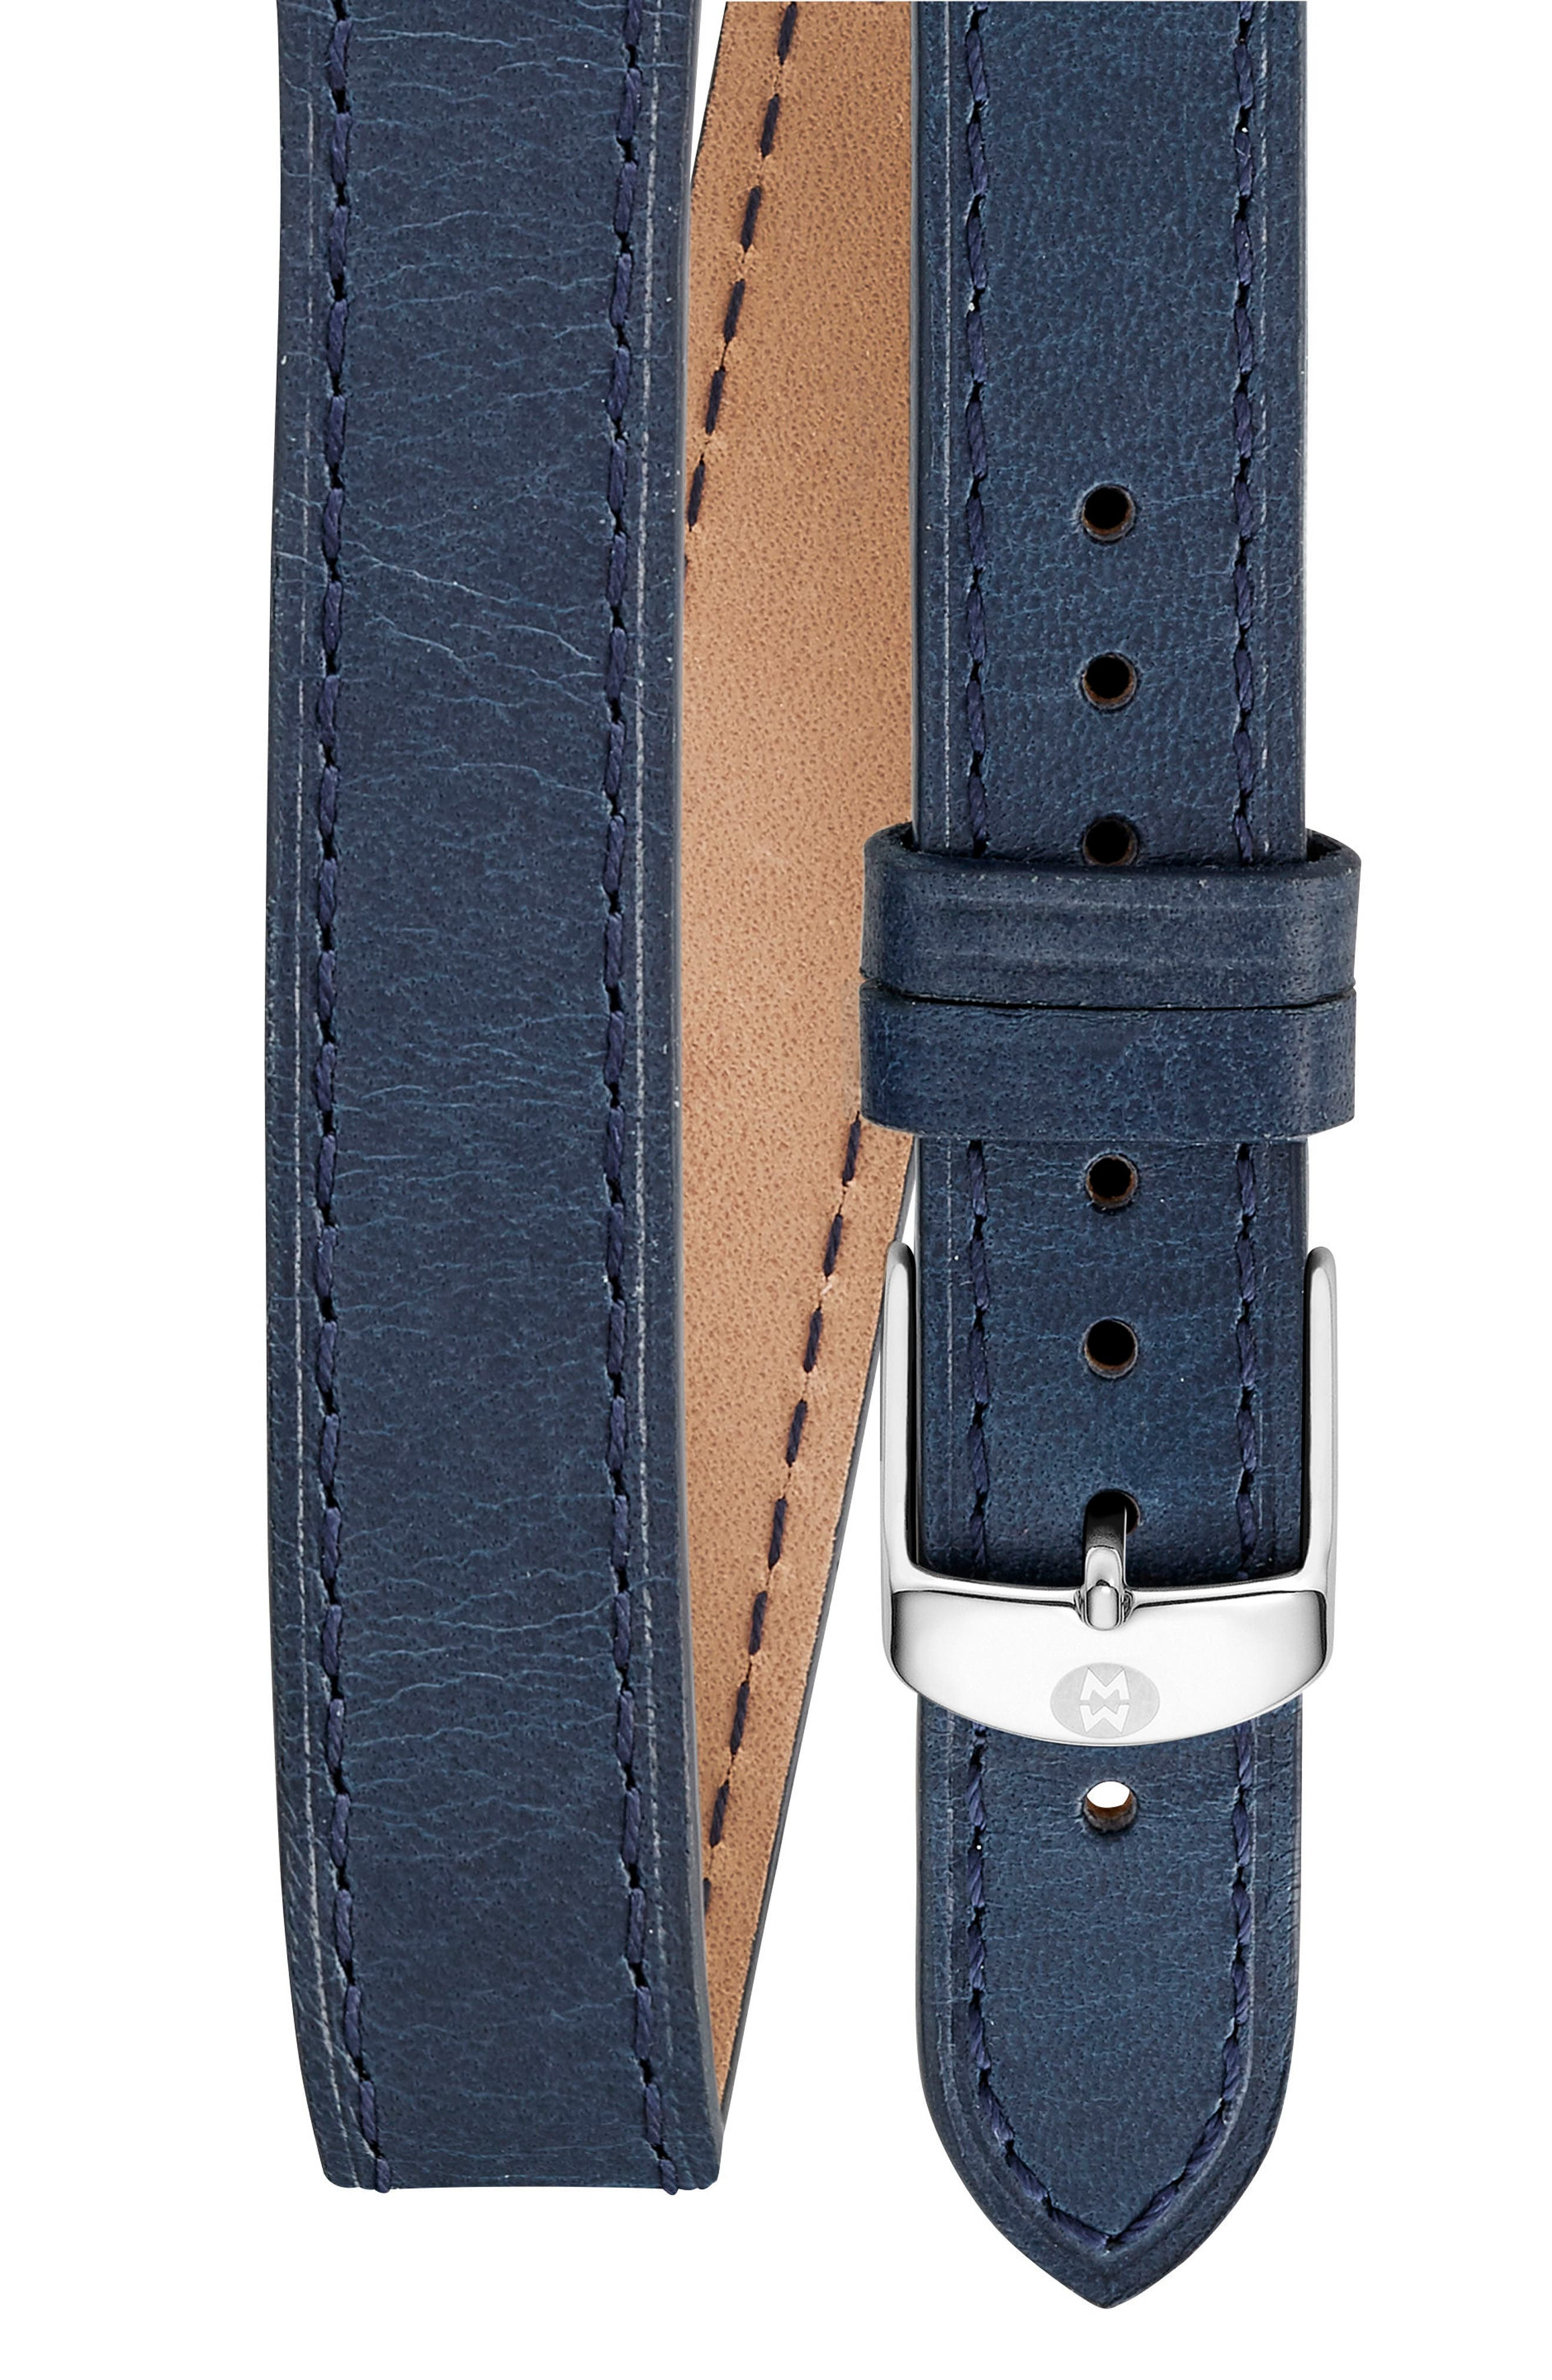 18mm Leather Watch Strap,                         Main,                         color, 400